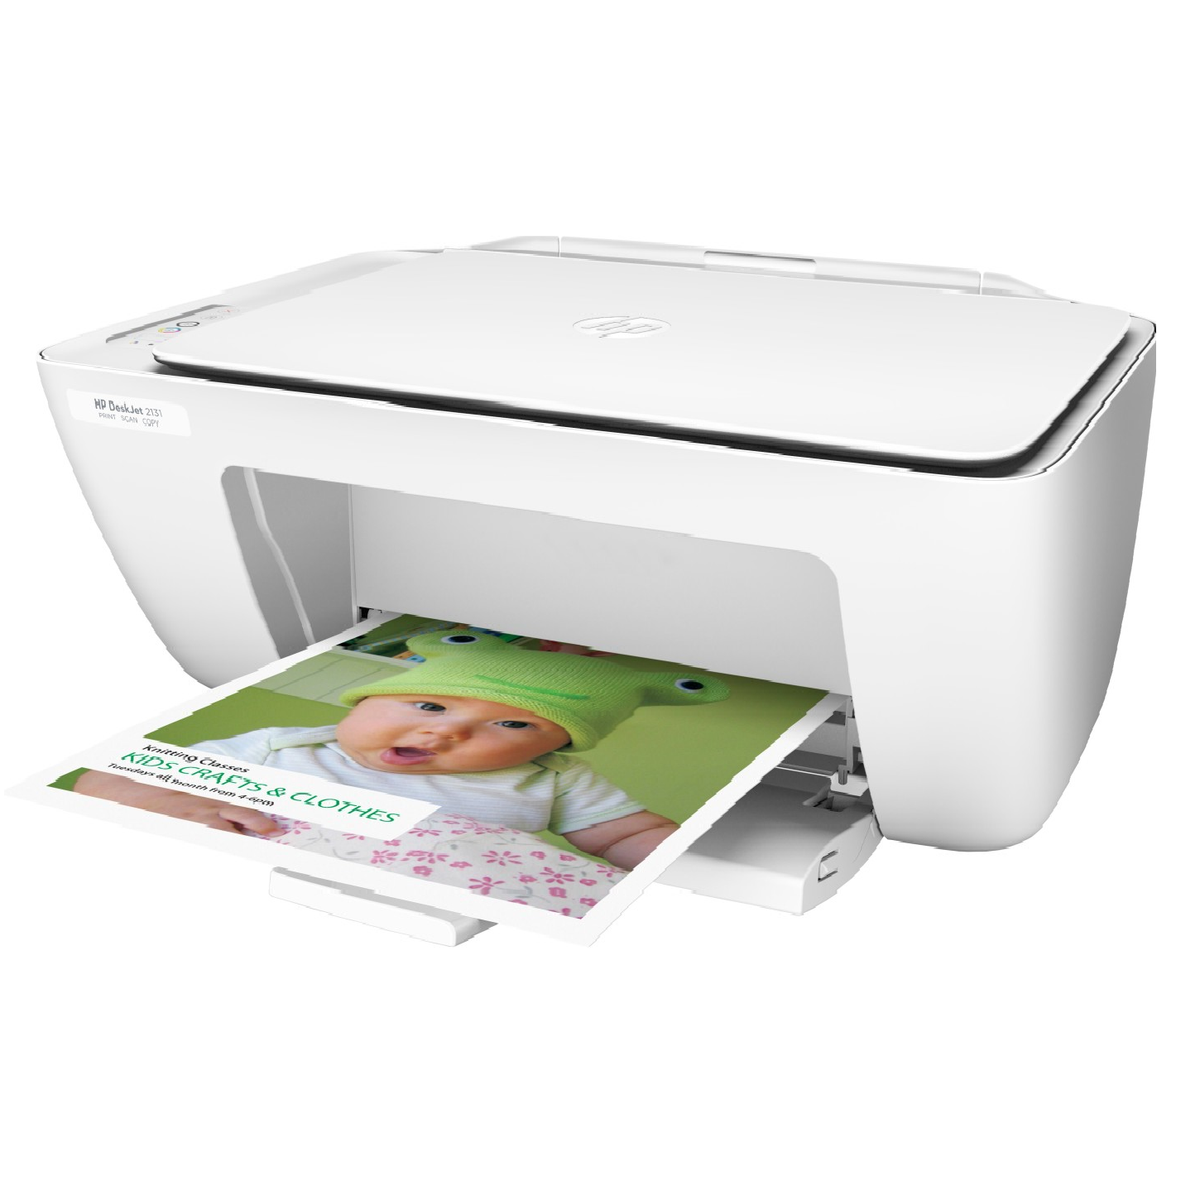 HP Deskjet Color 1112 Printer